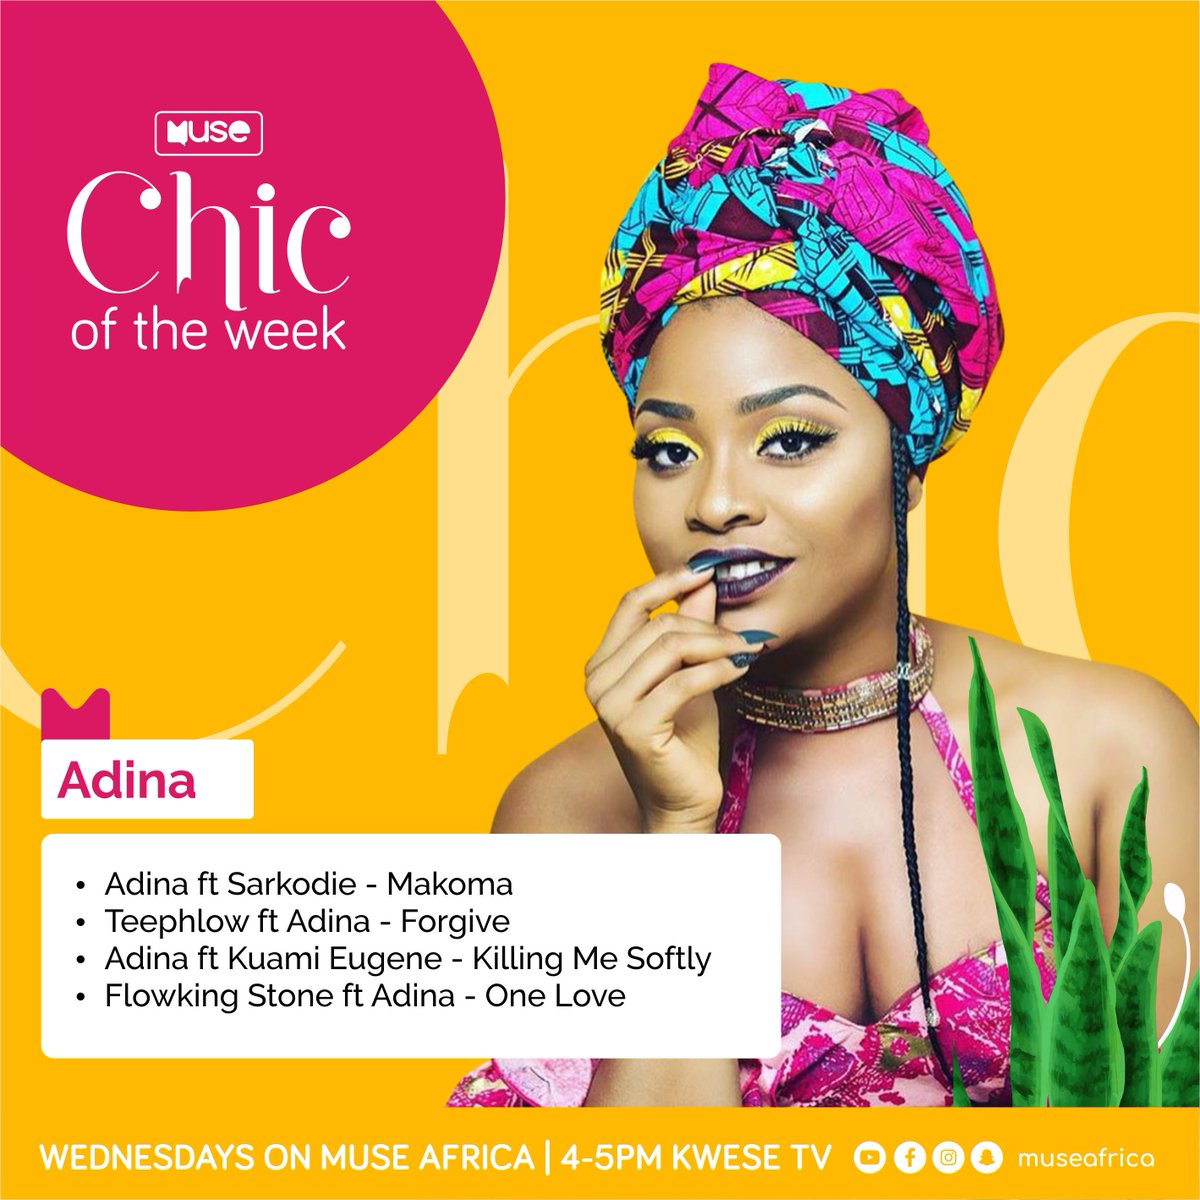 #MuseBOQ19 Our Muse Chic of the Week is award winning singer @Adina_Thembi.  Tune in to @Kwese_GH at 4pm and enjoy our special Adina Muse Chic of the Week Playlist